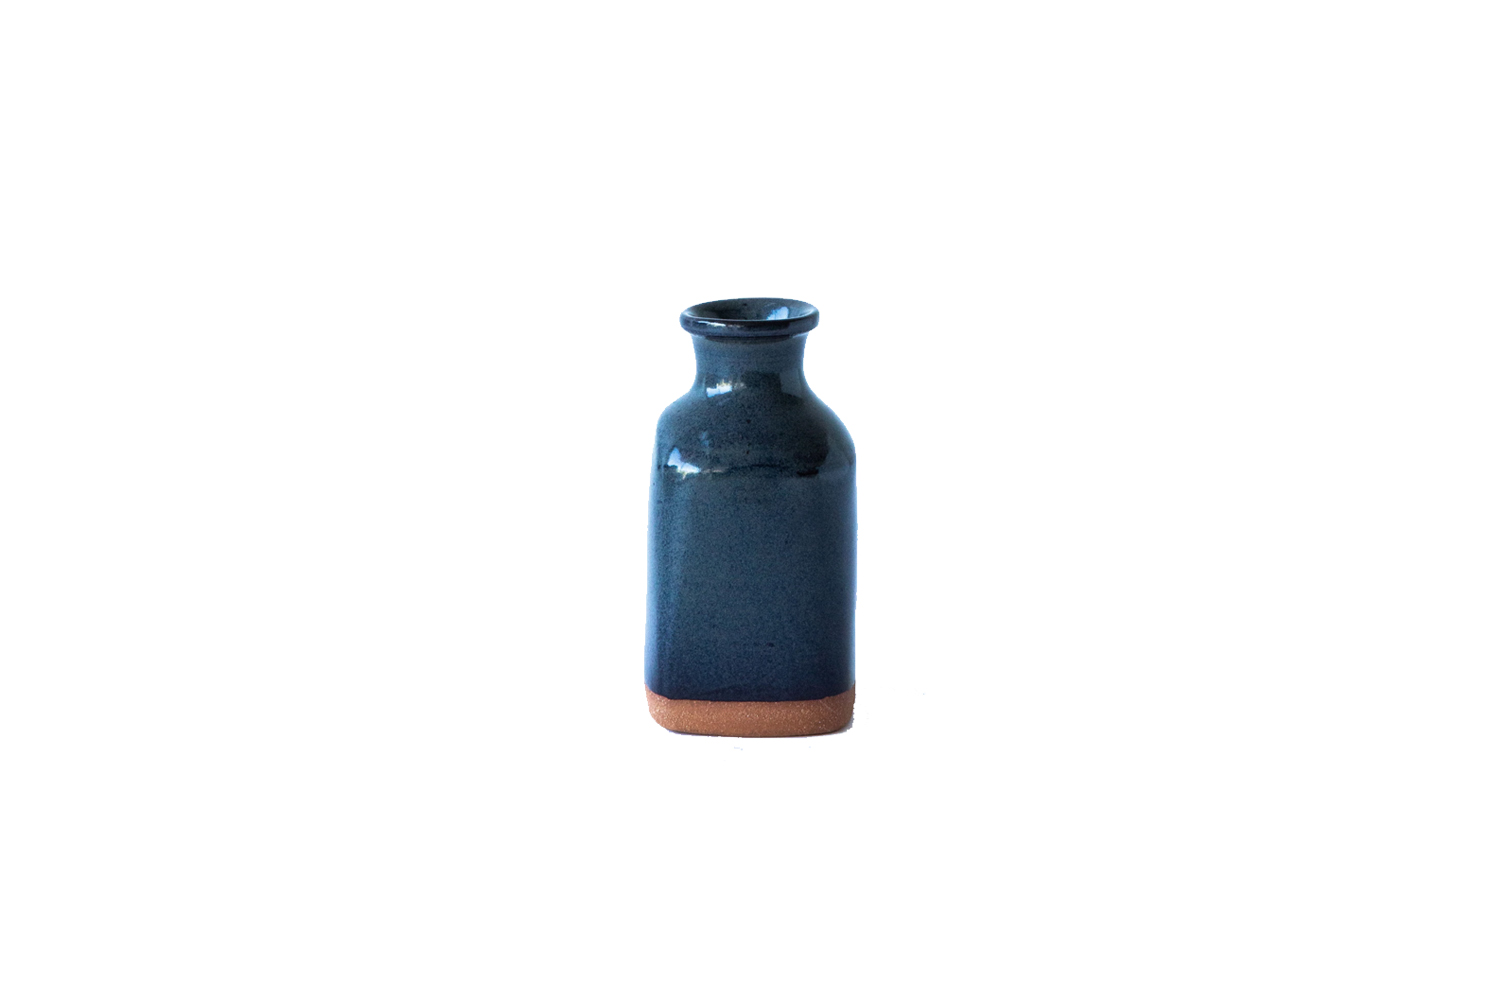 the new york stoneware charcoal bud vase is \$35 at lost and found in los angel 25